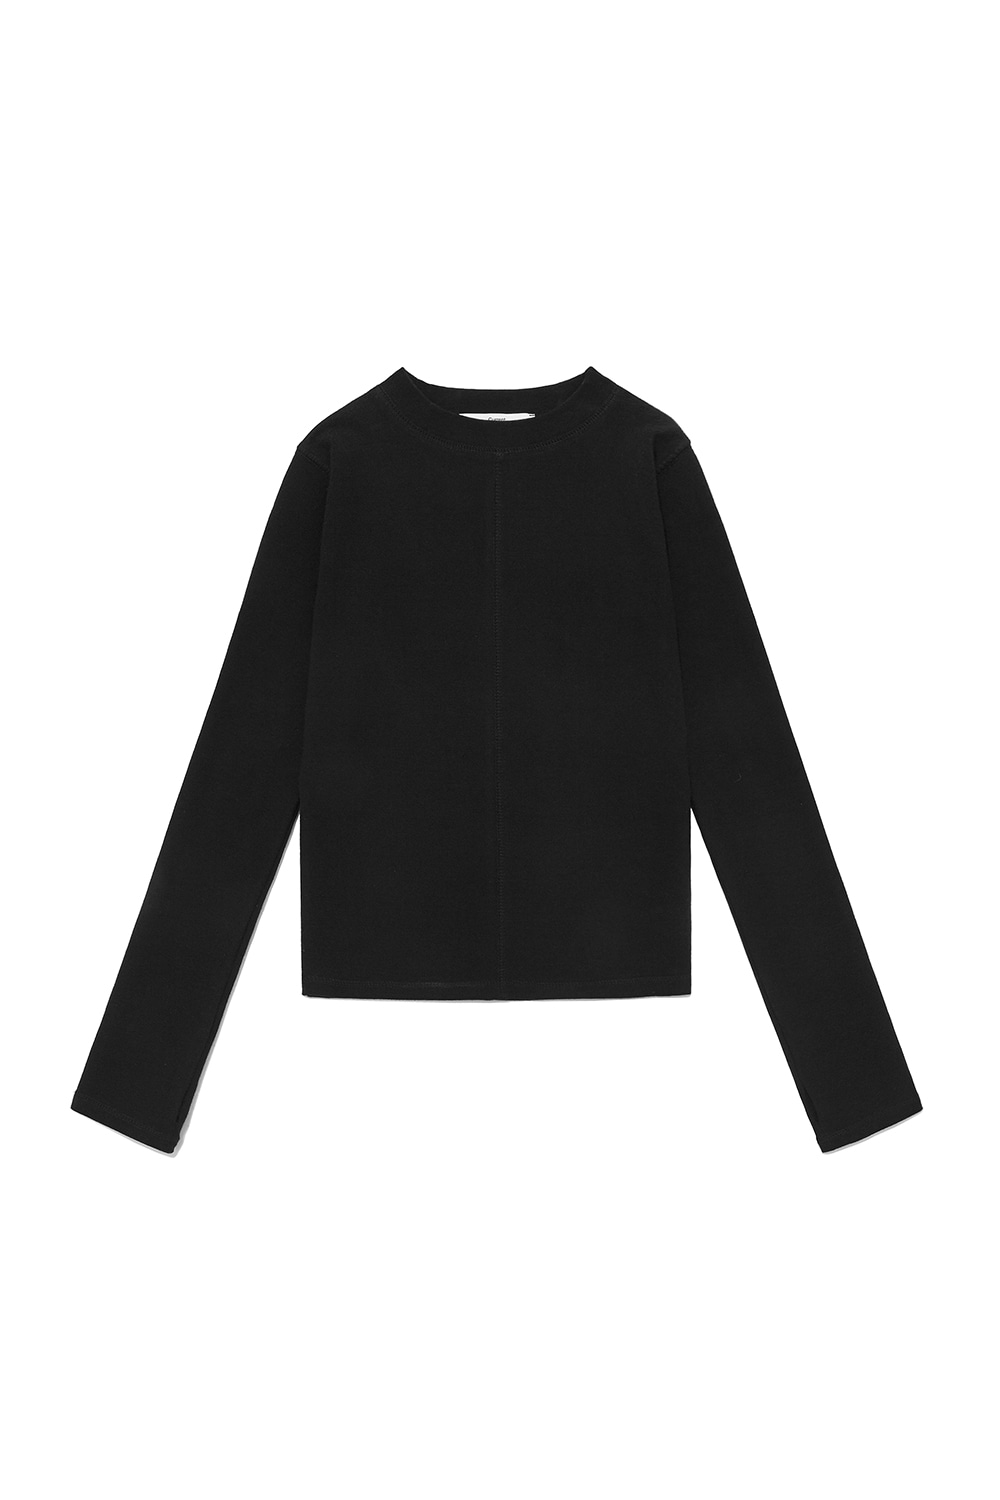 Long sleeve Tee Women [Black]